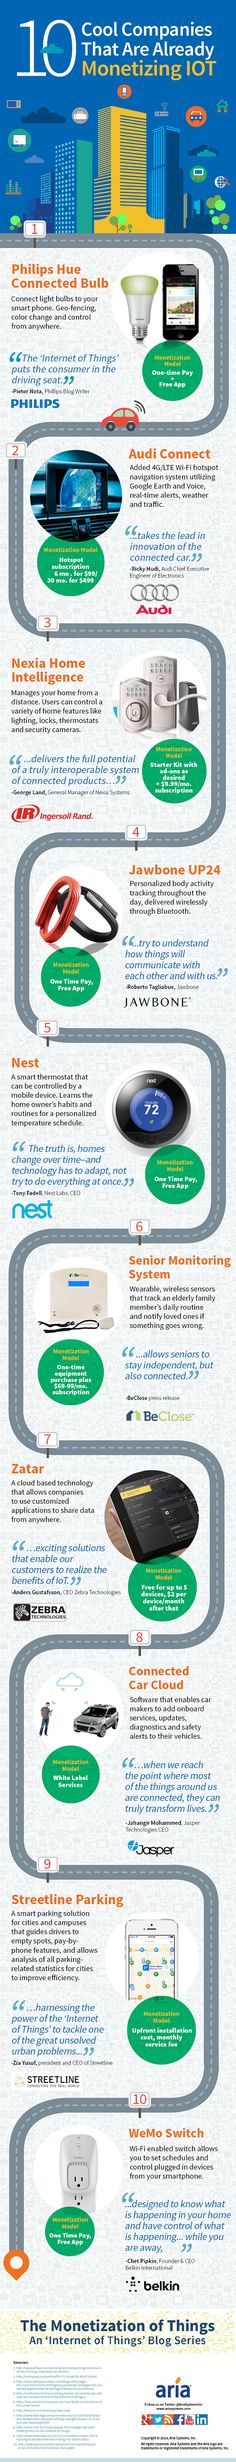 "10 Companies Making Money From the ""Internet of Things"" [Infographic] - 'Net Features - Website Magazine"